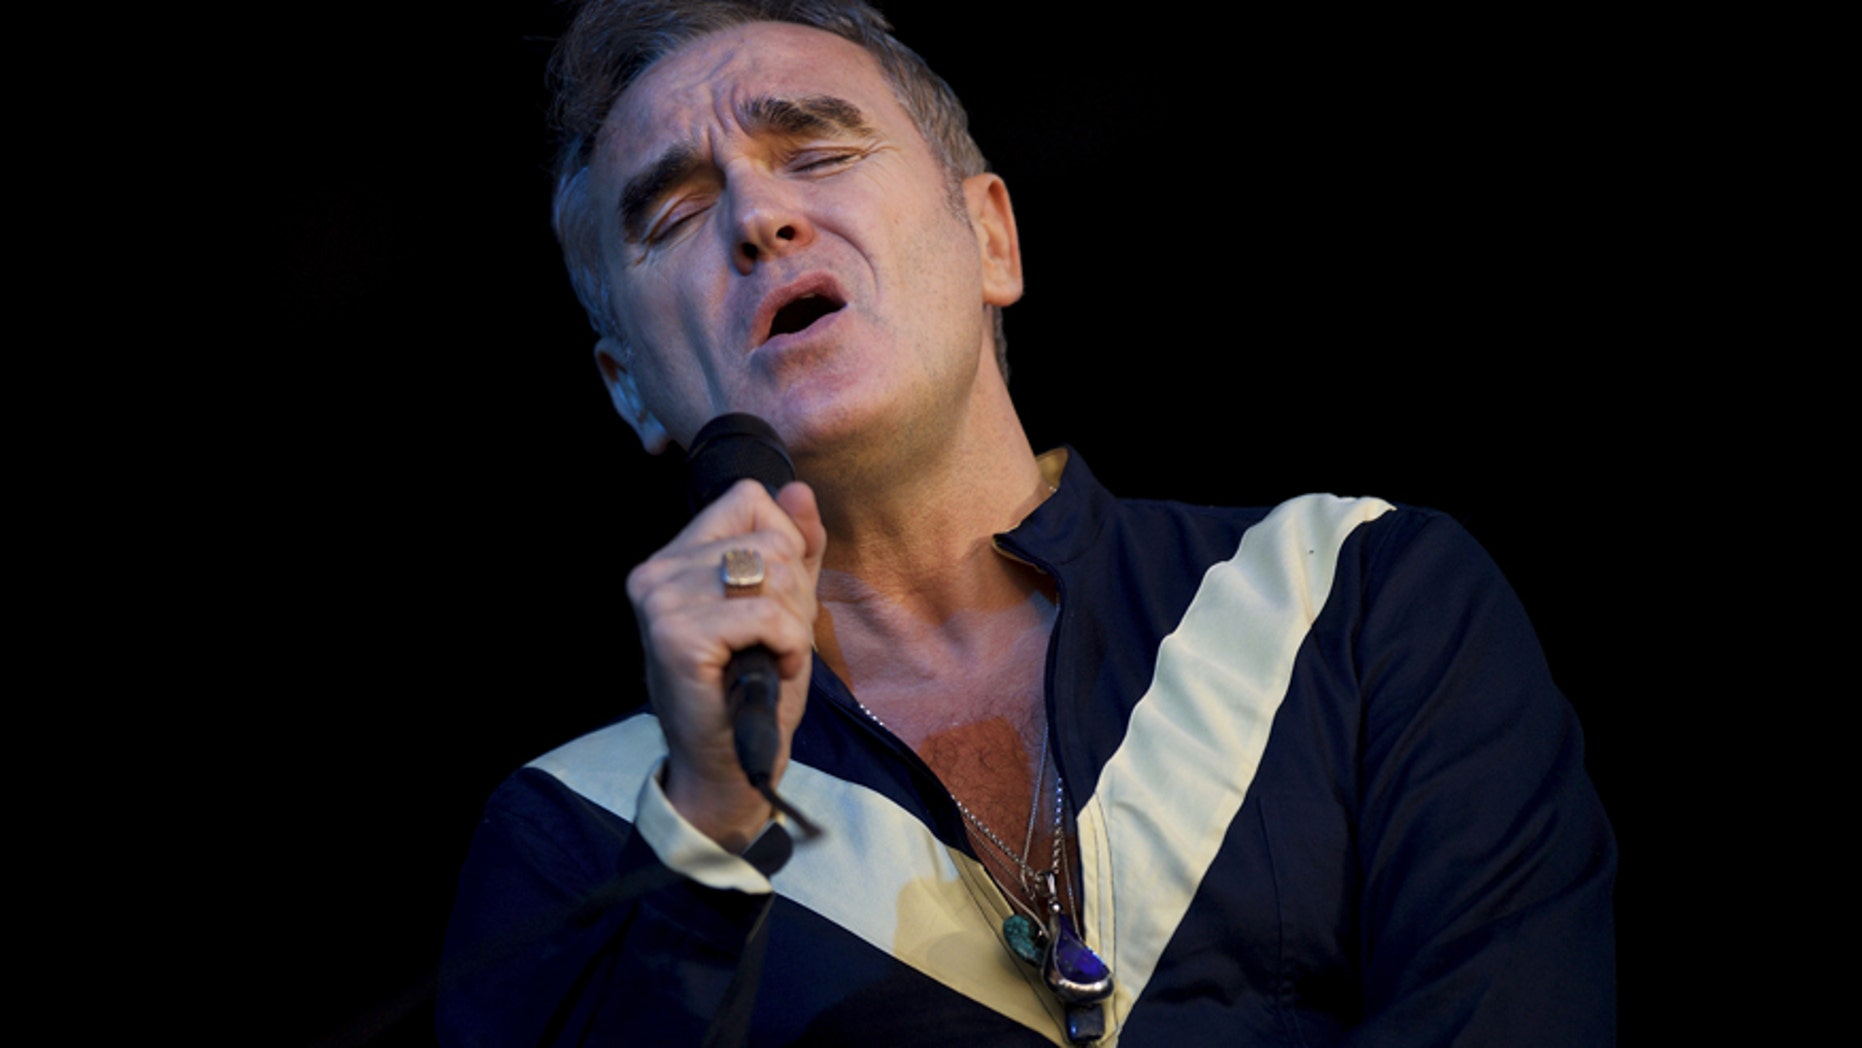 British Singer Morrissey Reportedly Attacked at San Diego Concert